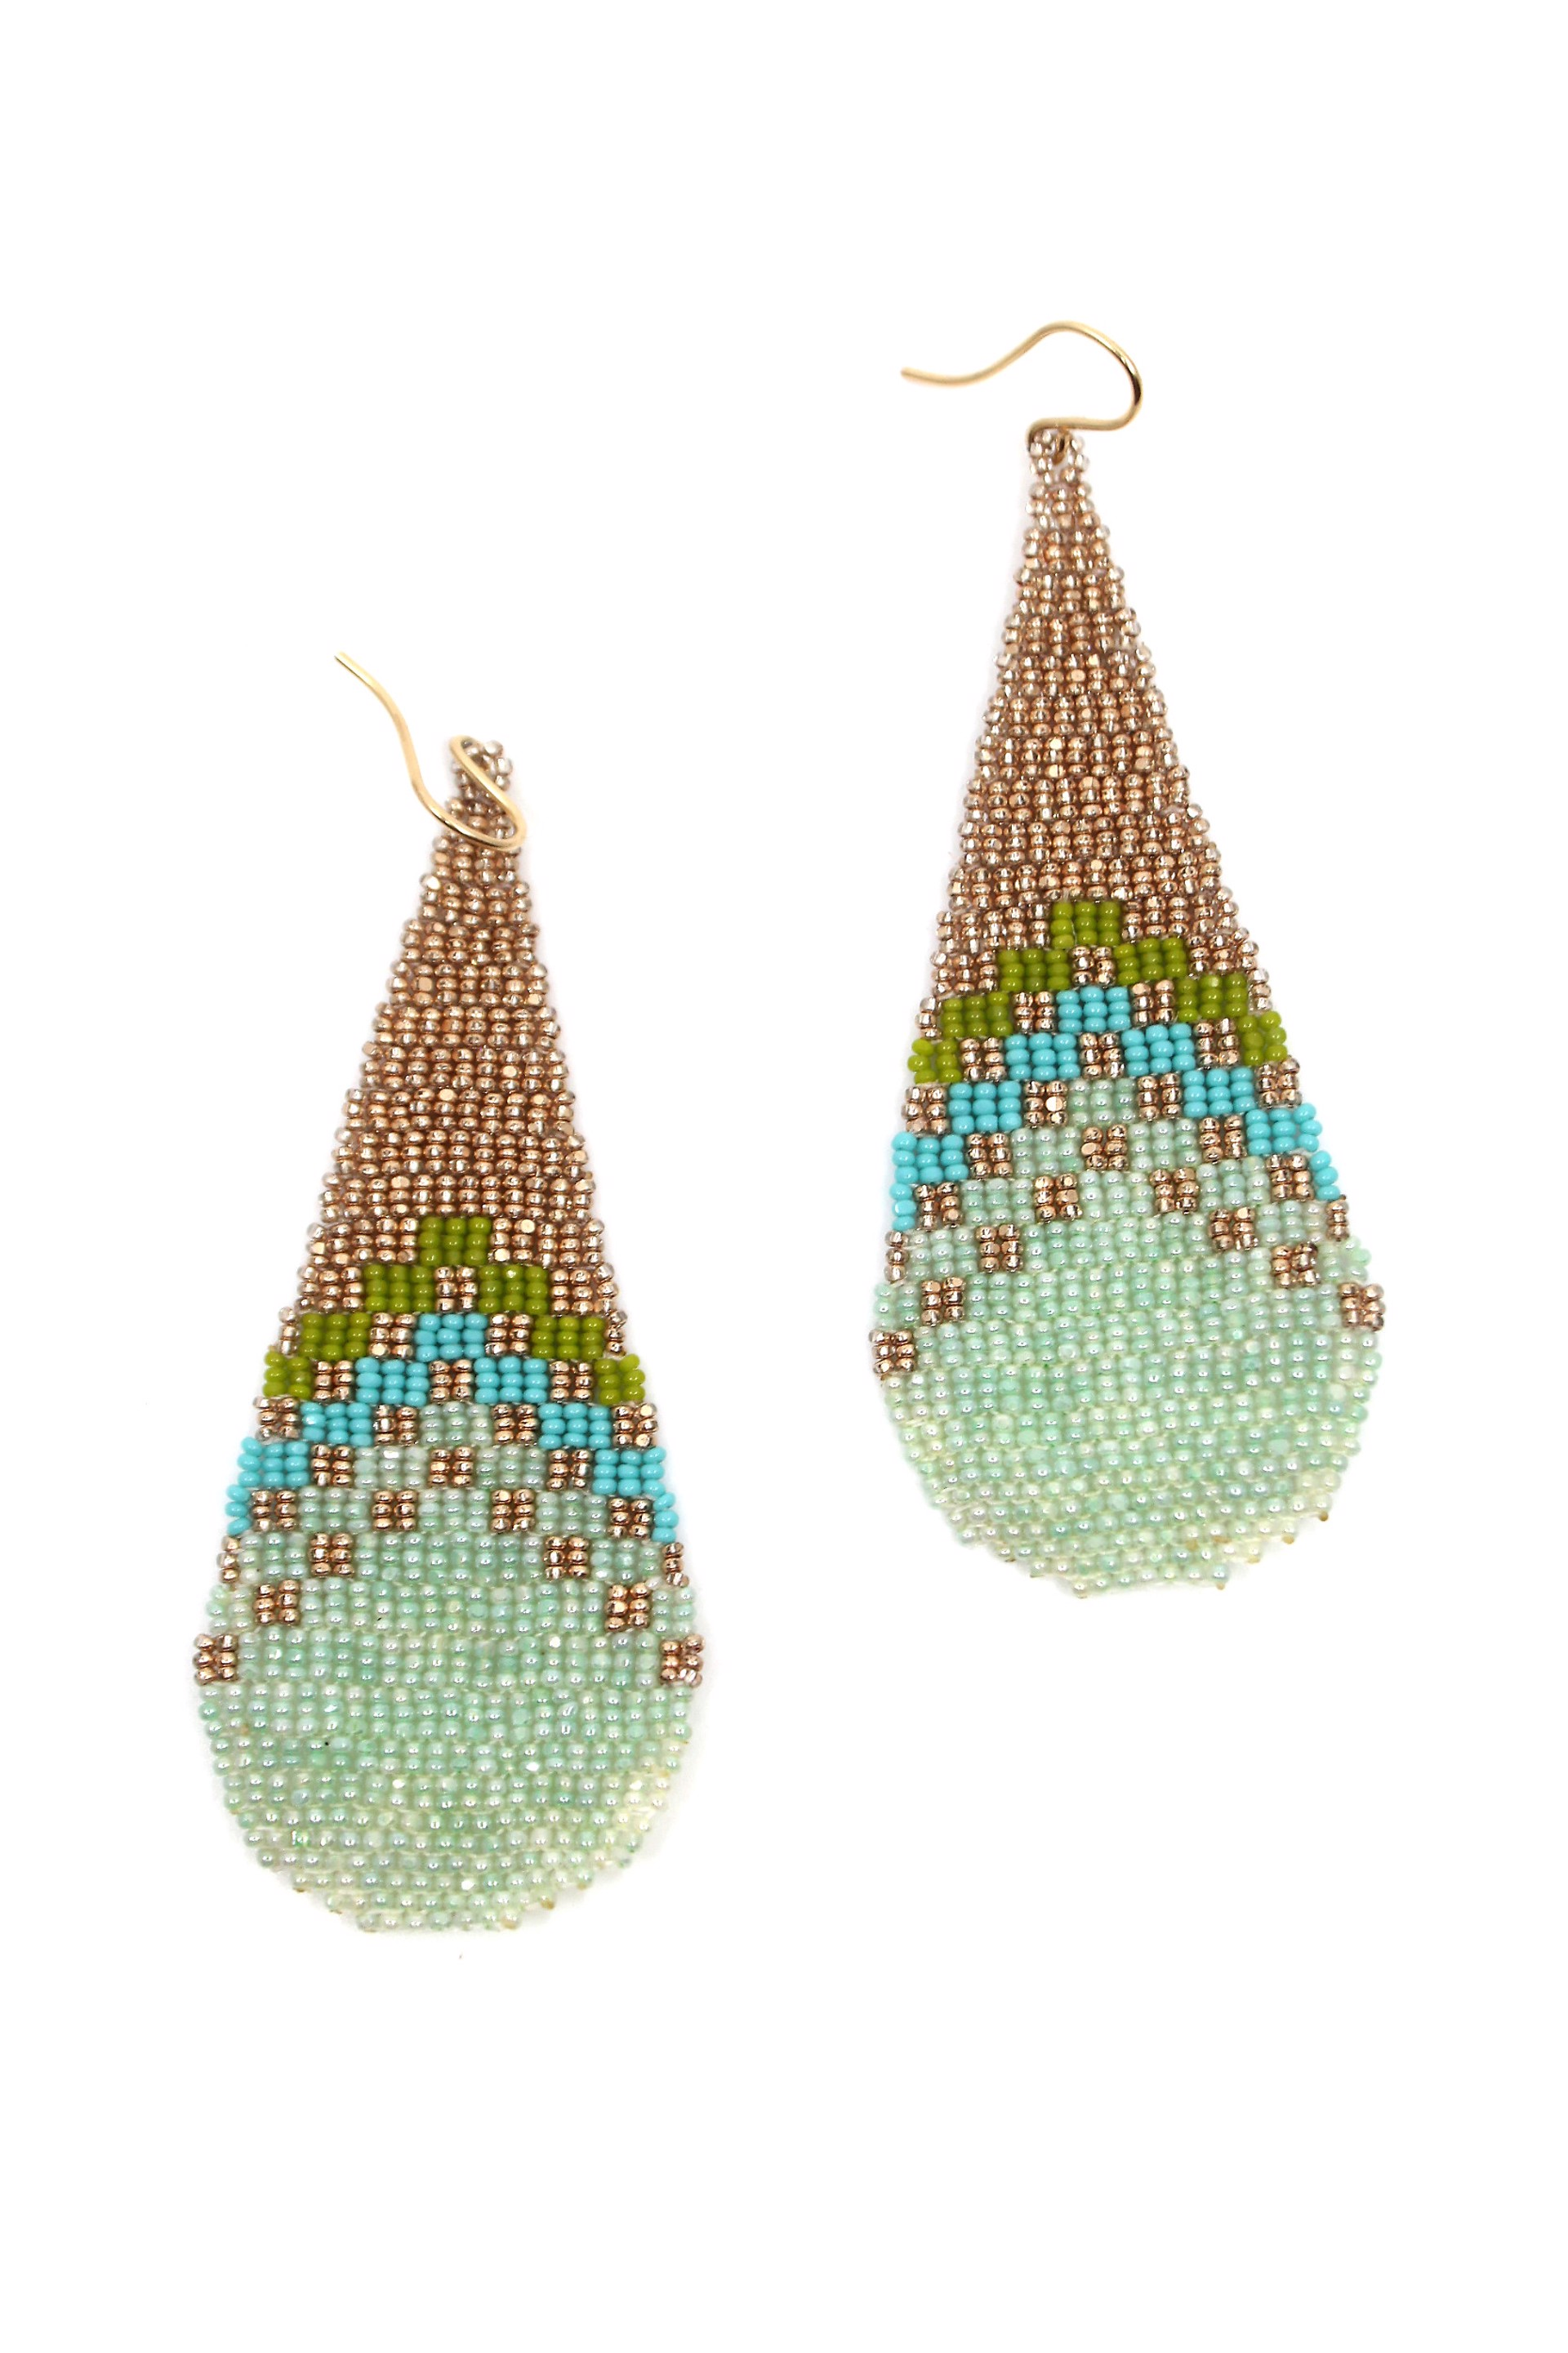 Checkered Earrings by Mikayla Patton